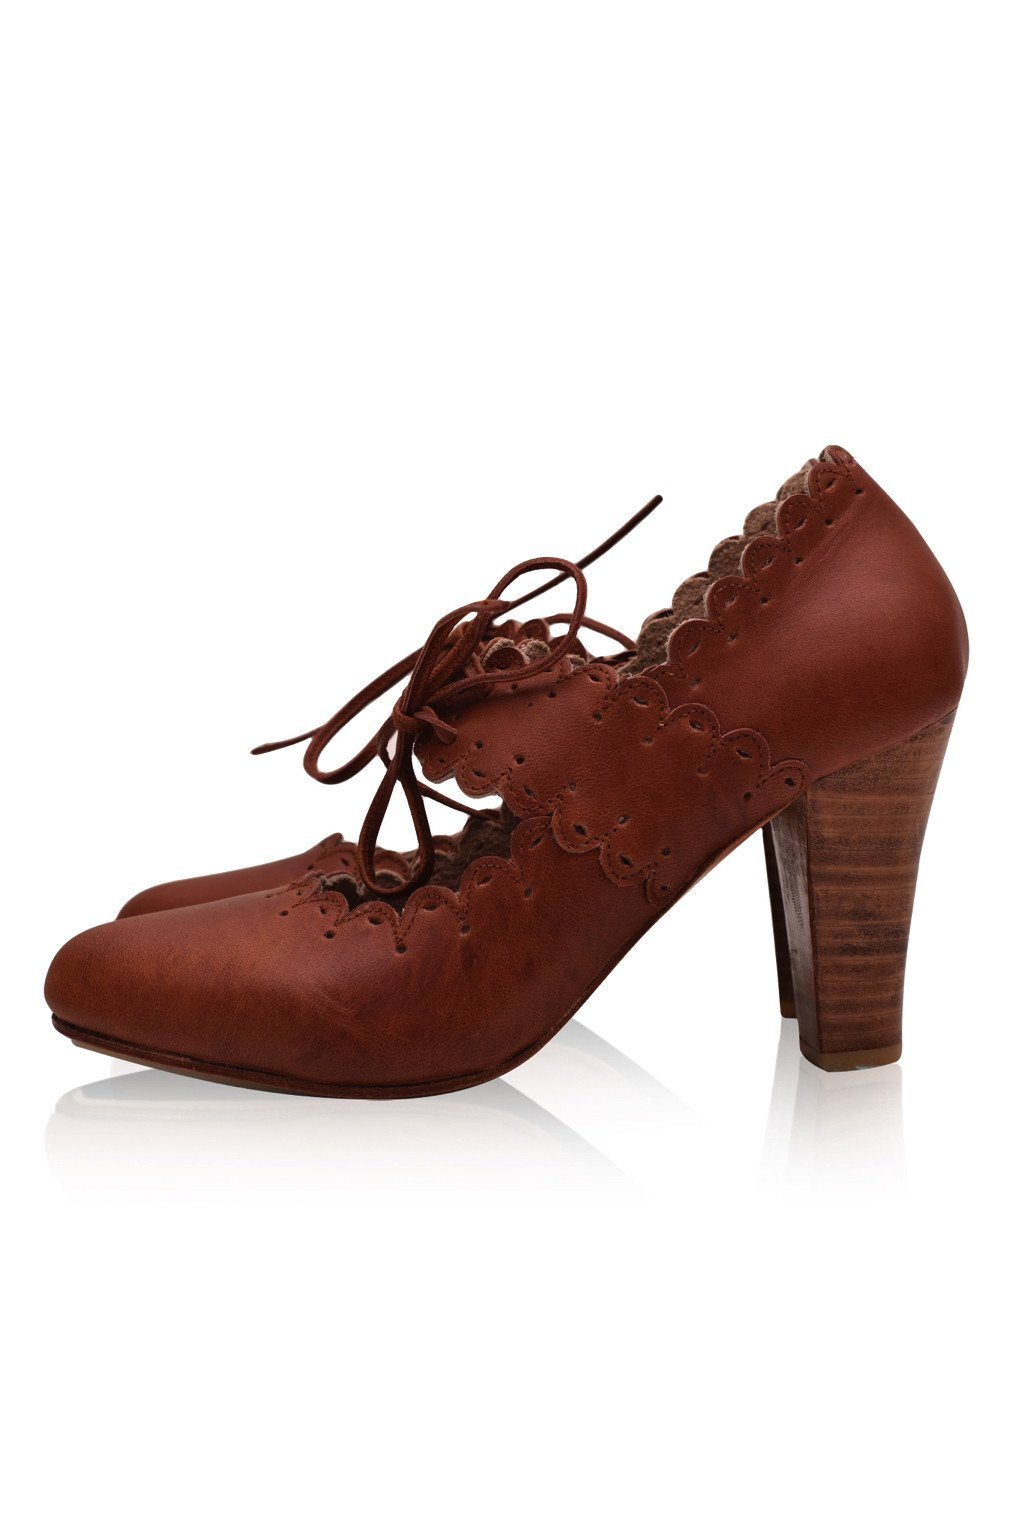 BaliELF Made by Hand Paradise Bird Leather Heels Size 9 Color Aged Whiskey Elf